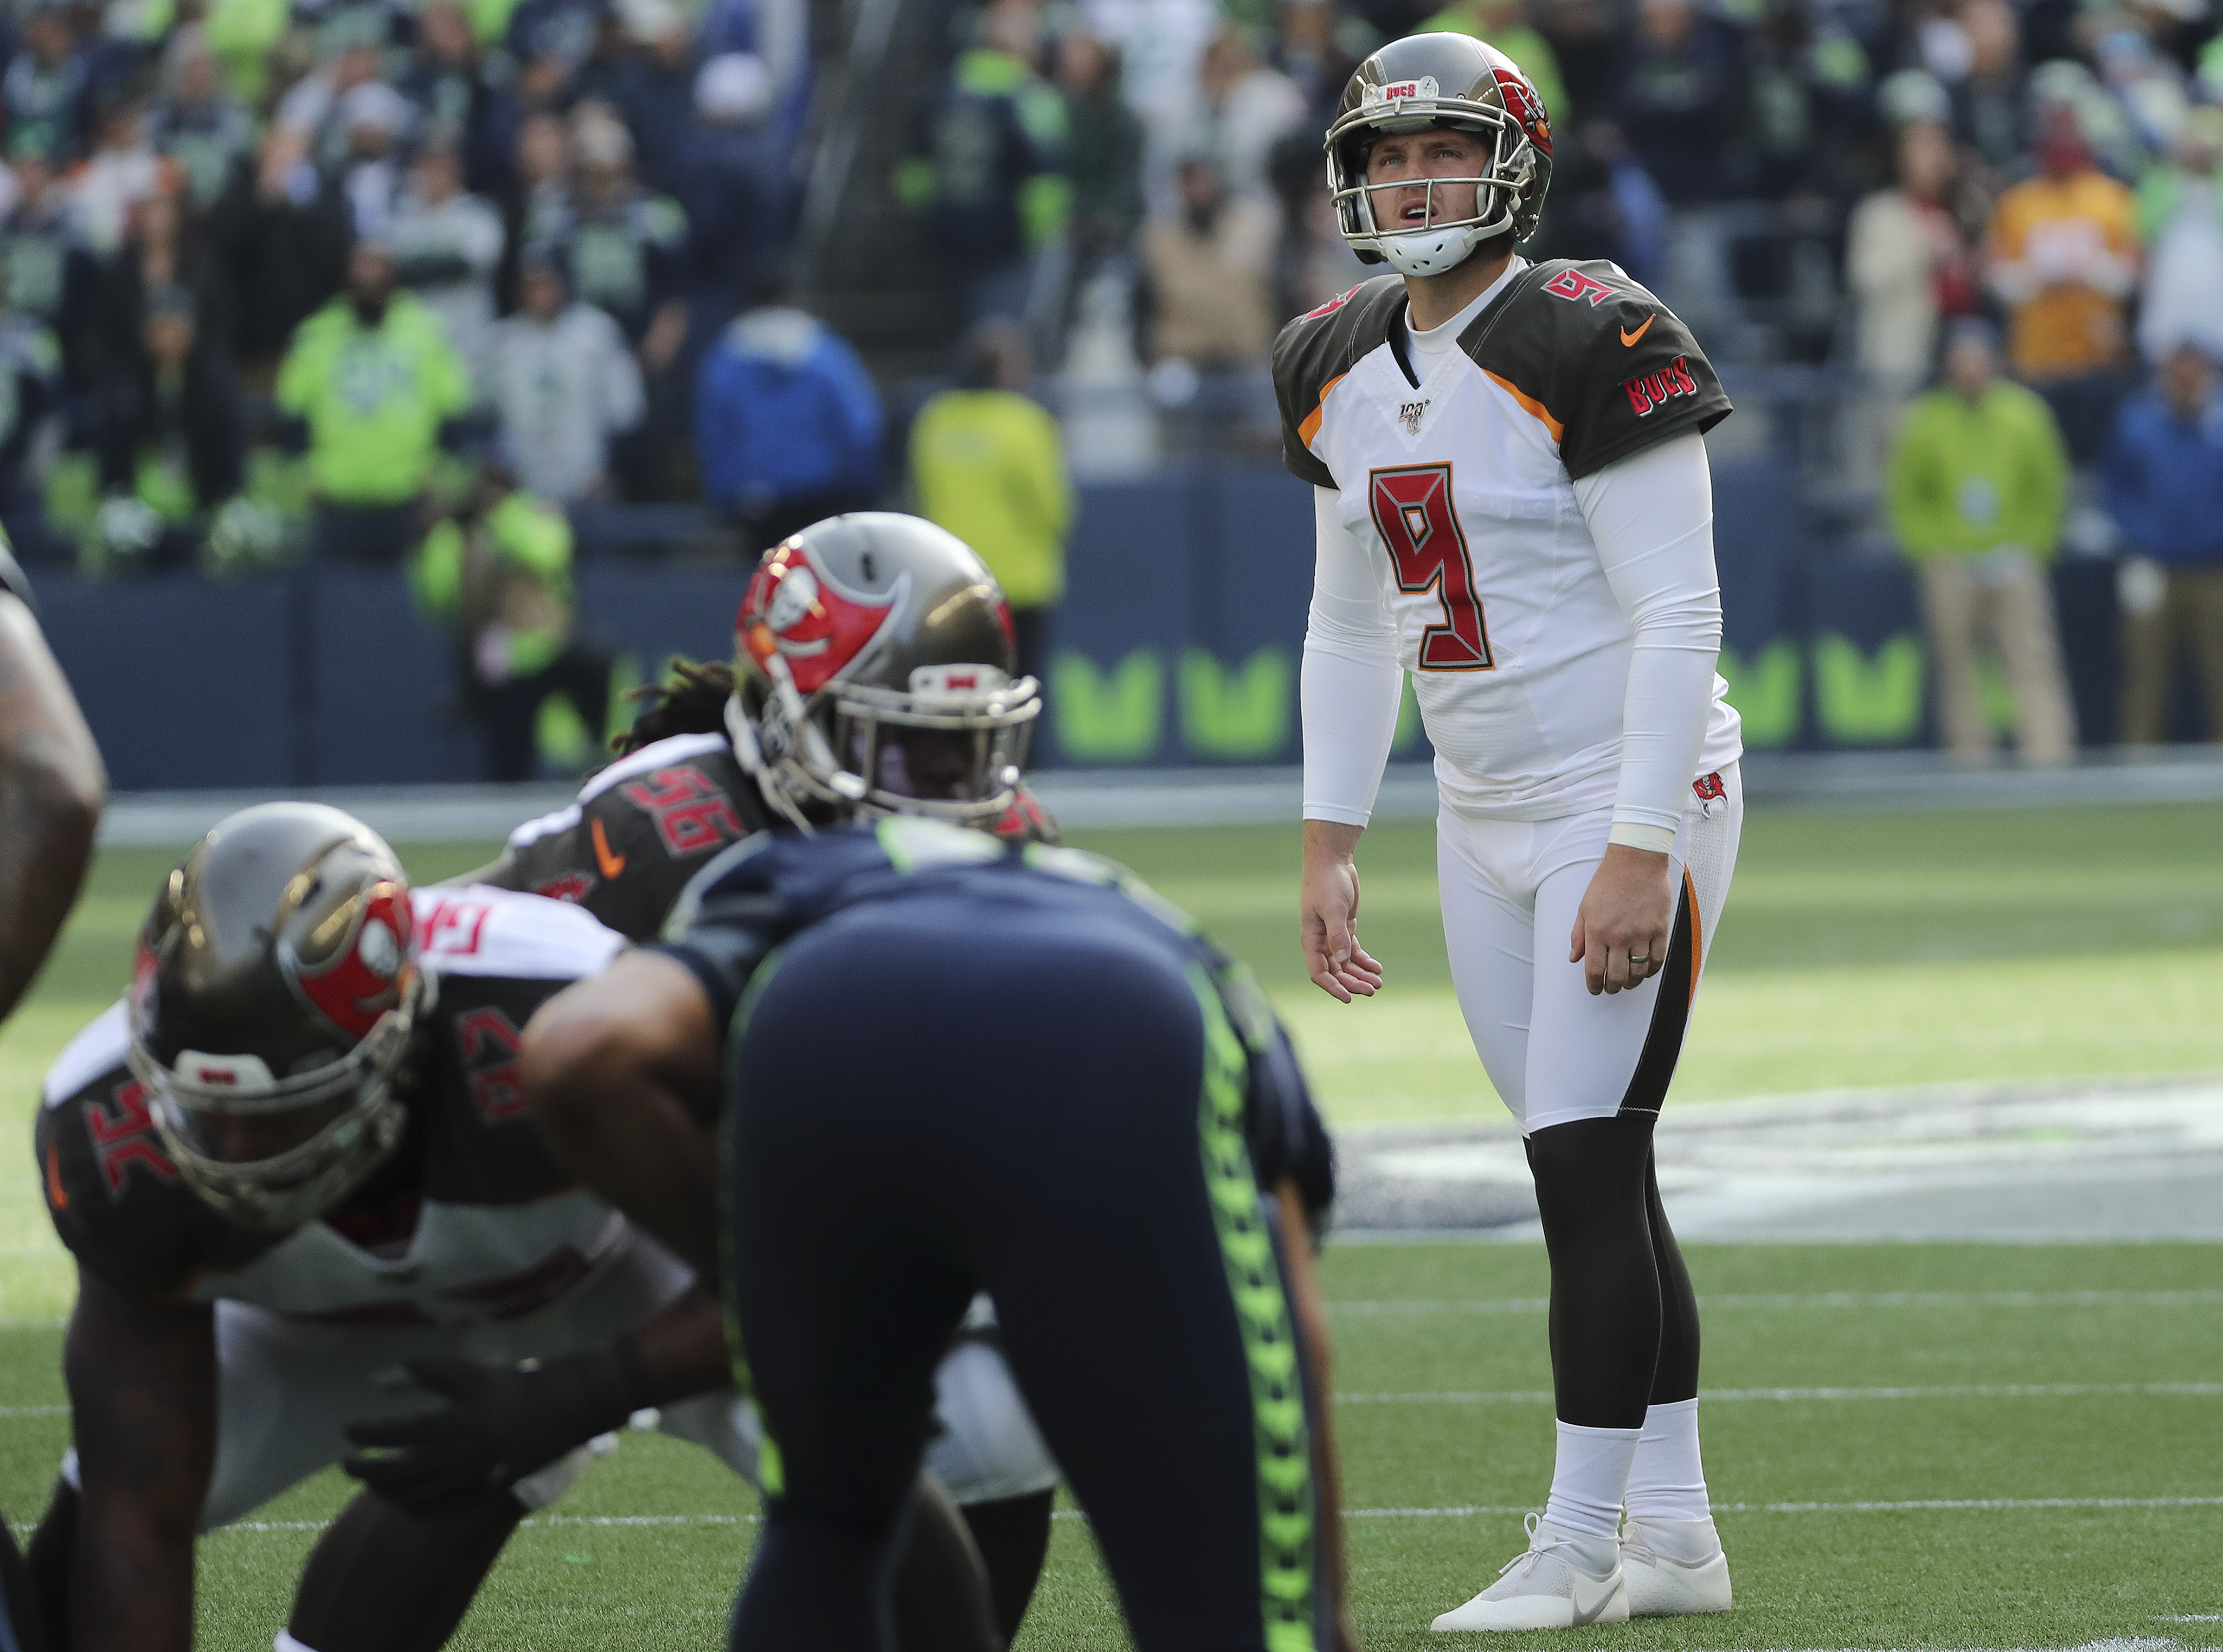 Former Utah Ute and Tampa Bay Buccaneers kicker Matt Gay (9) prepares to kick a field goal against the Seattle Seahawks during an NFL football game in Seattle on Sunday, Nov. 3, 2019.